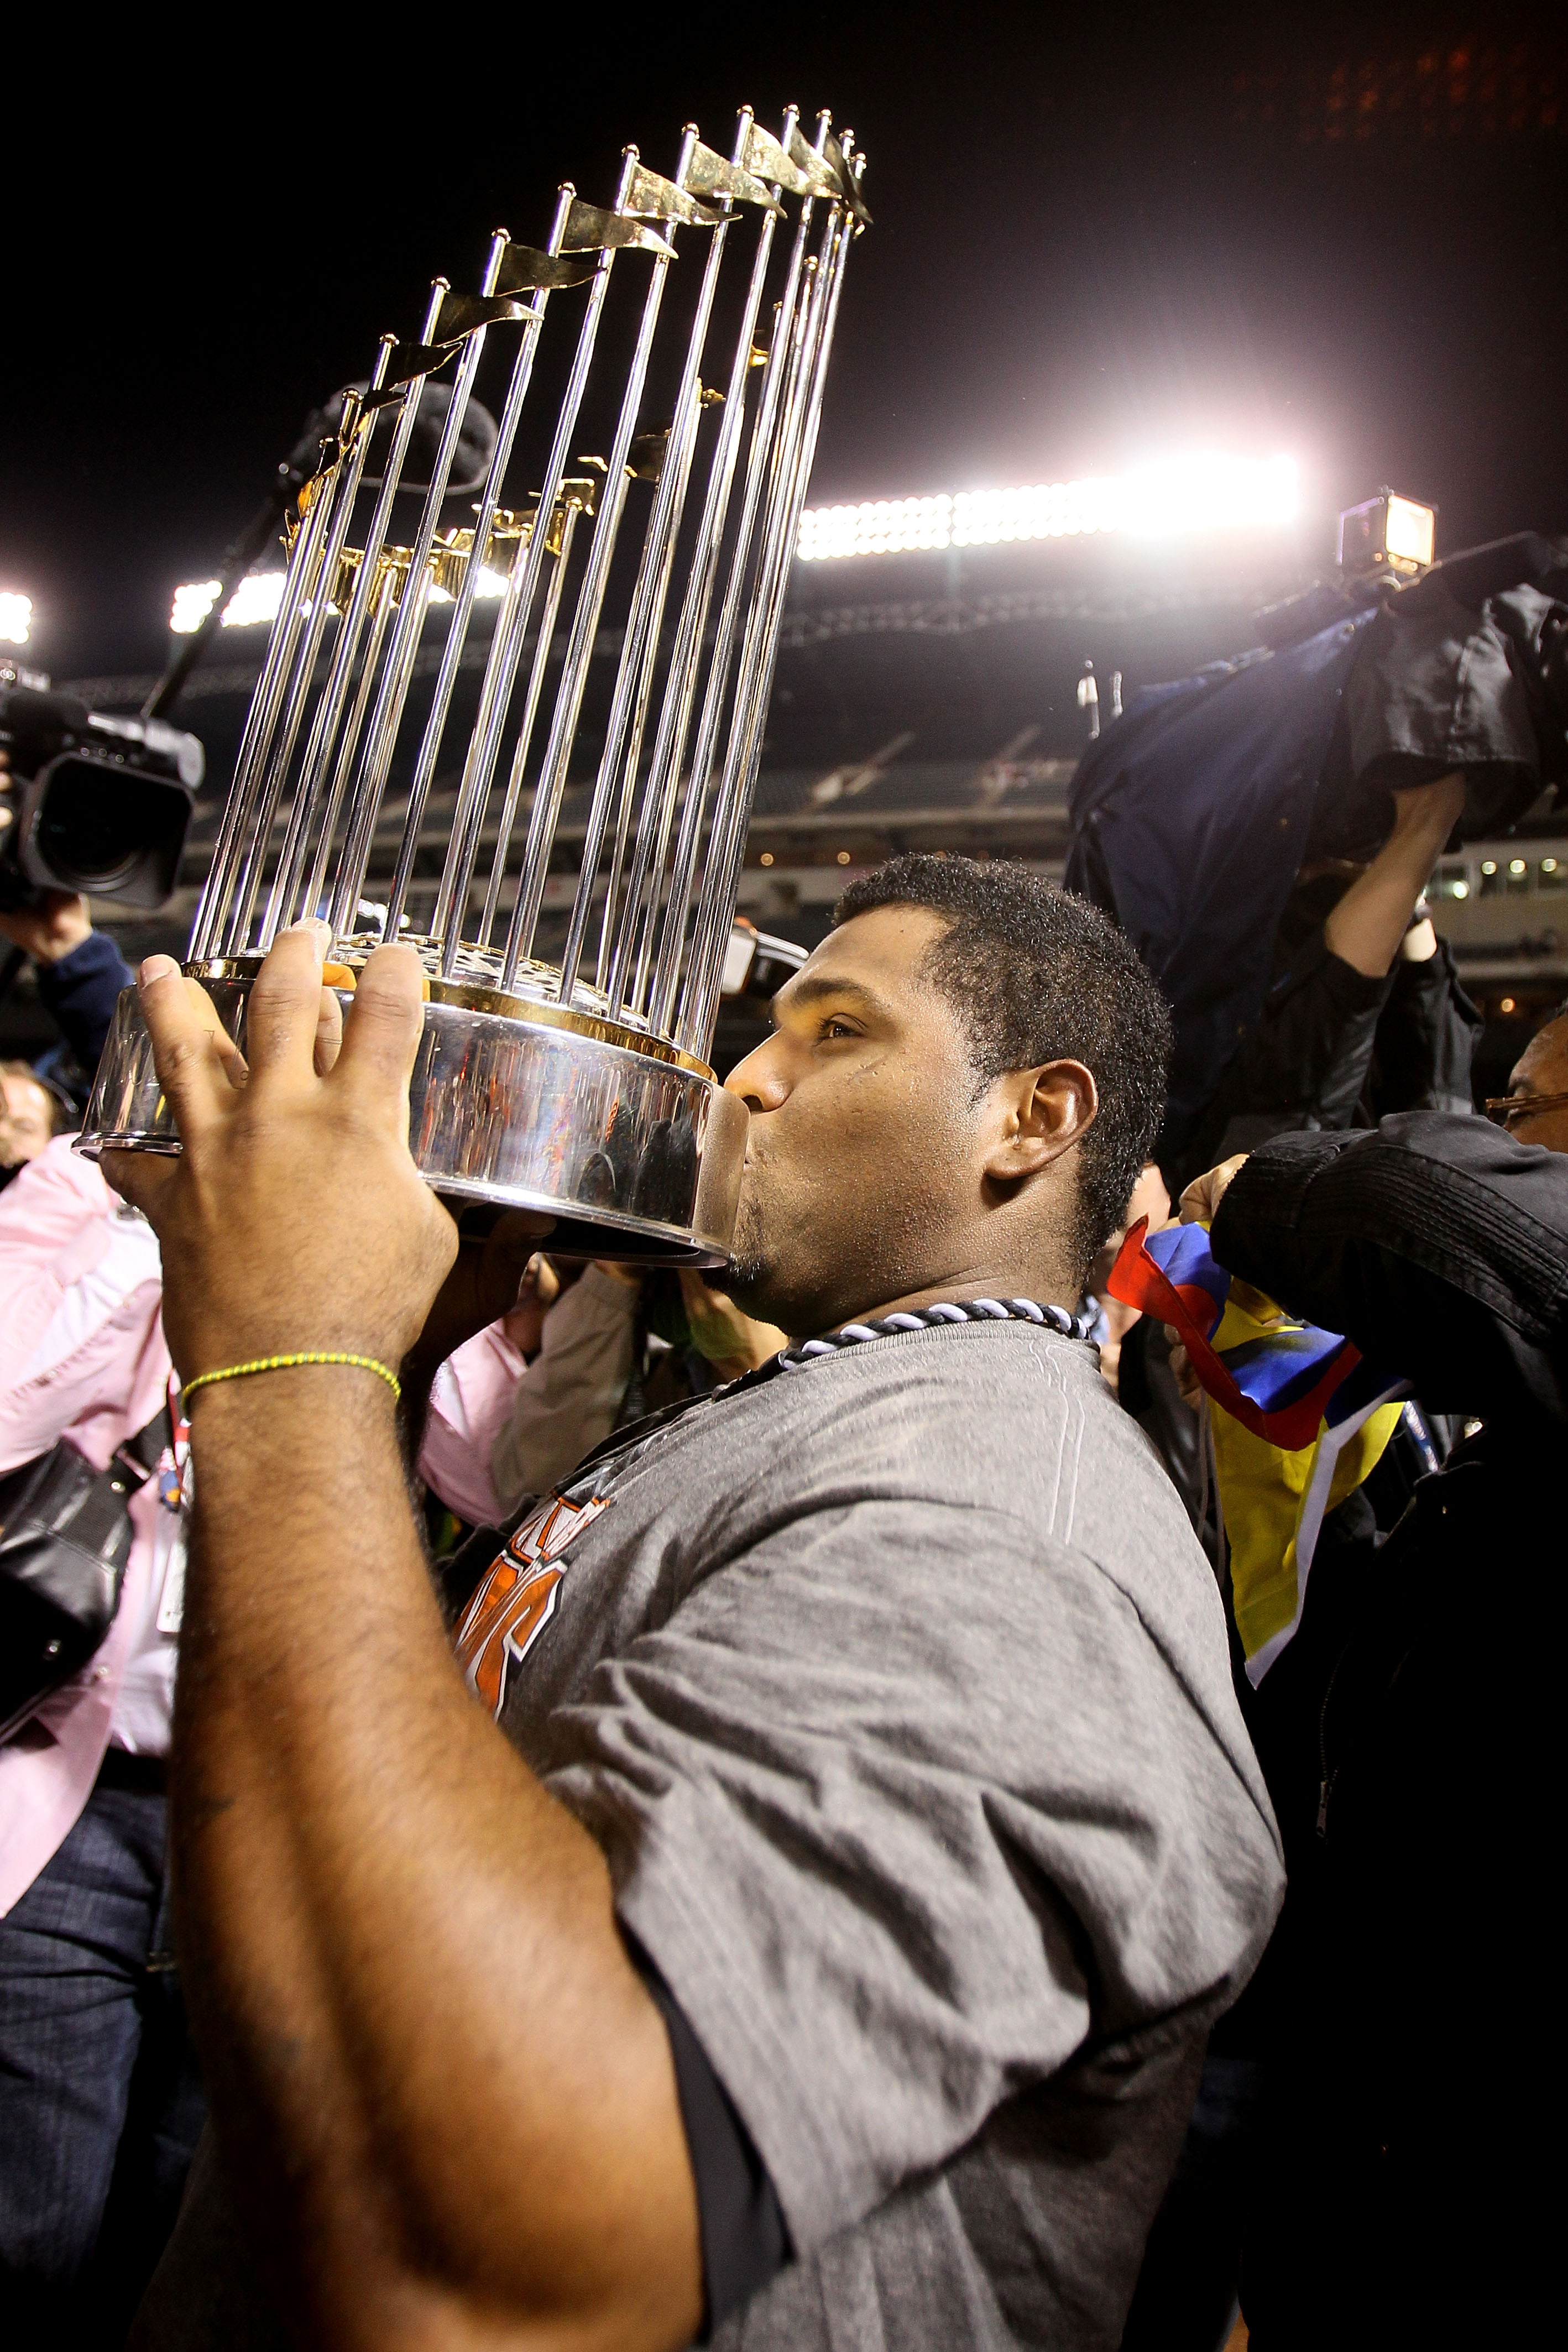 If the Giants want to win the World Series again, they may need more offense.